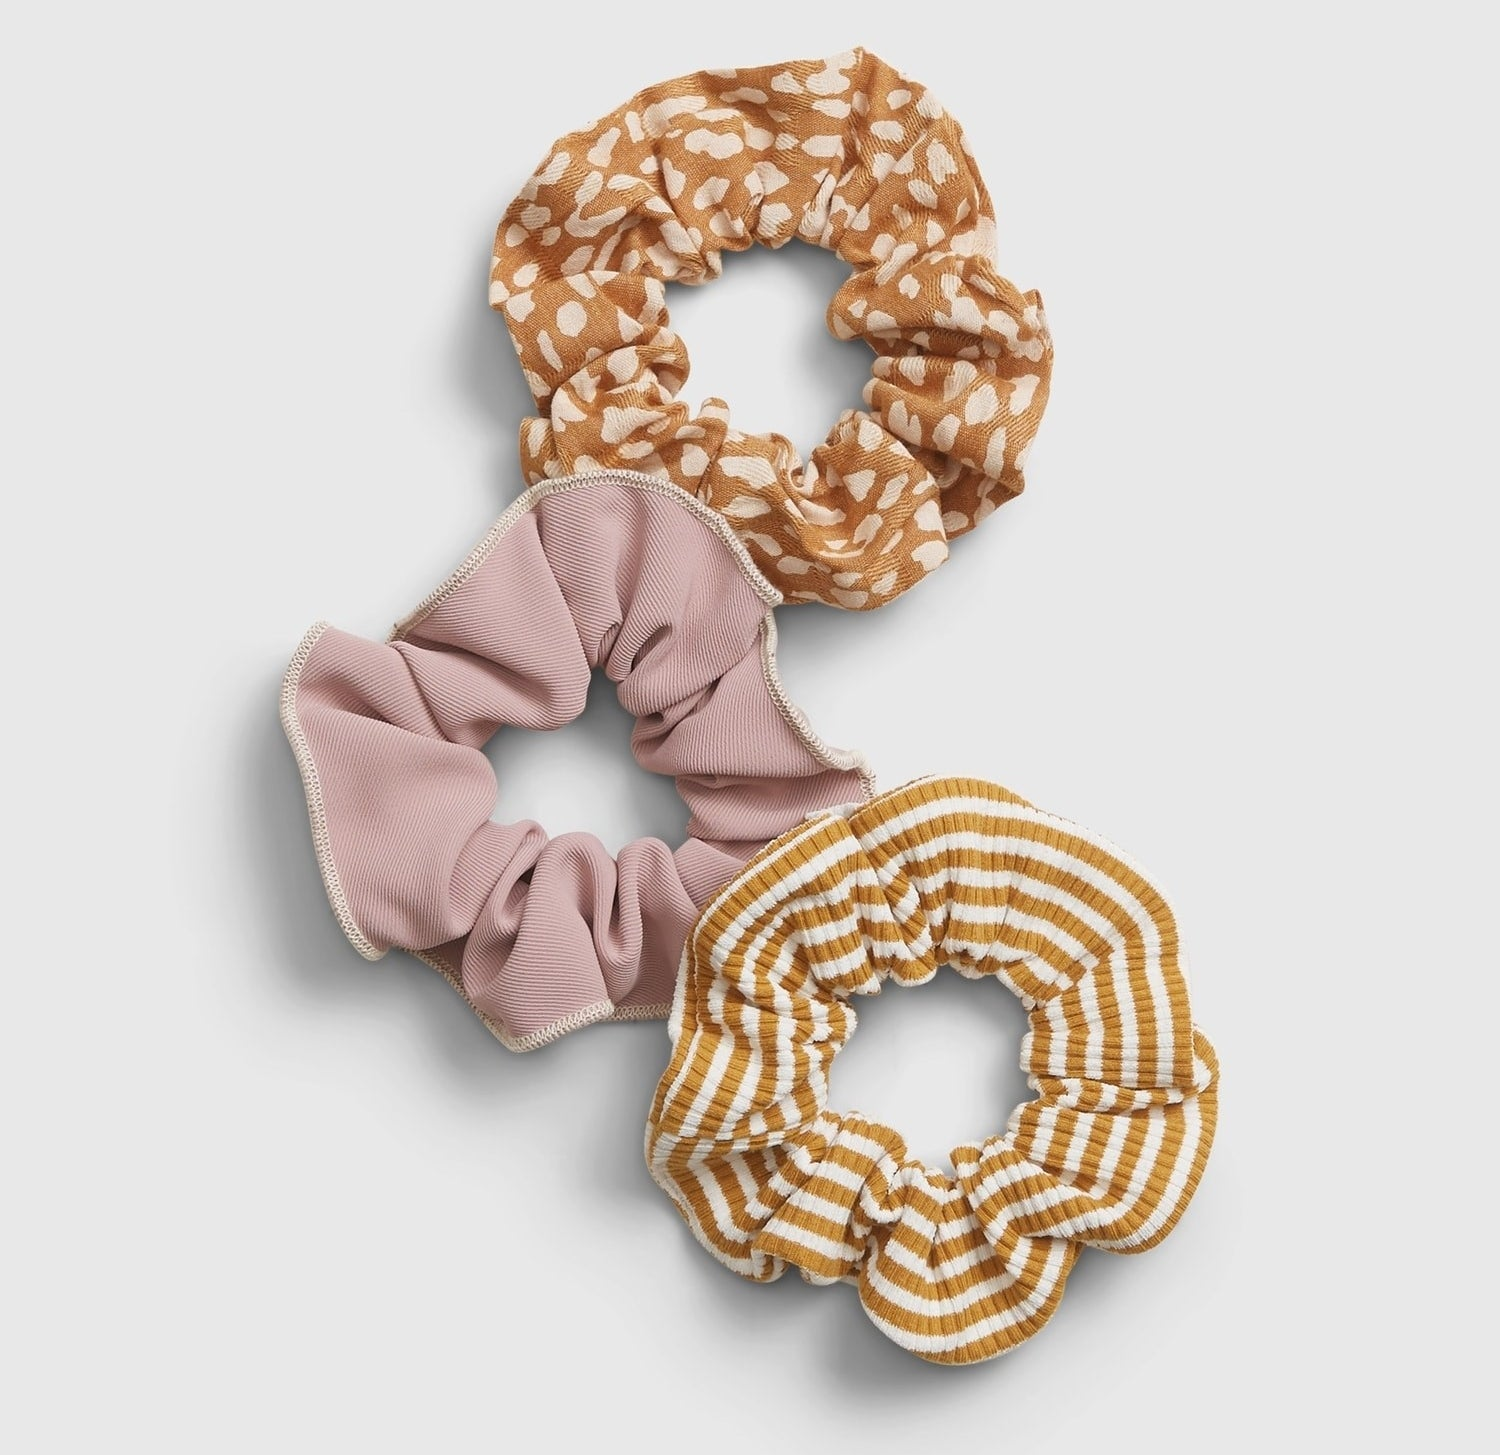 3-pack of scrunchies in warm, fall colors